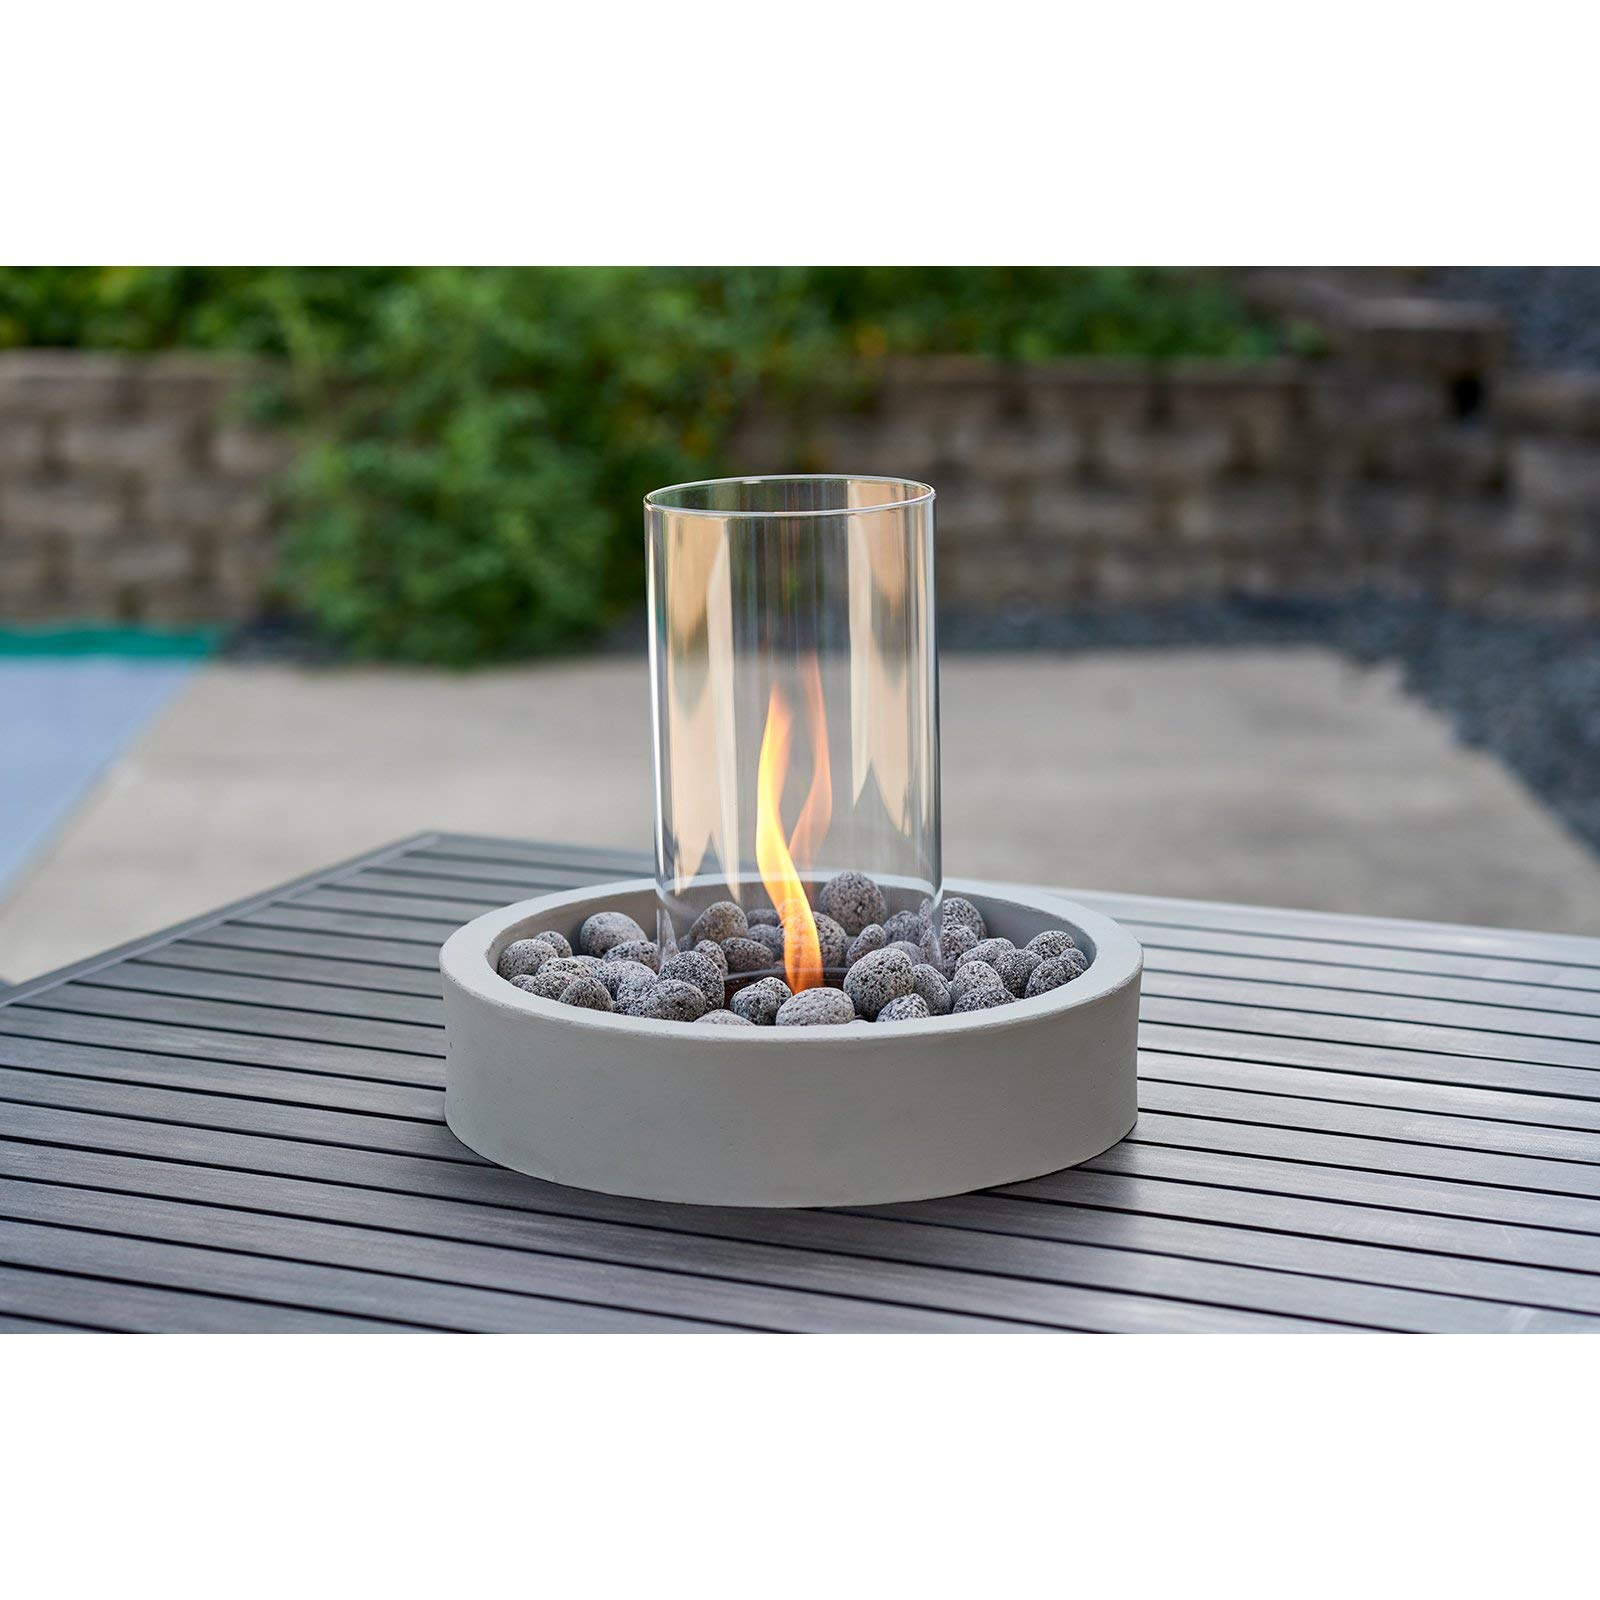 Jur_Global Cove Intrigue Table Top Outdoor Lantern